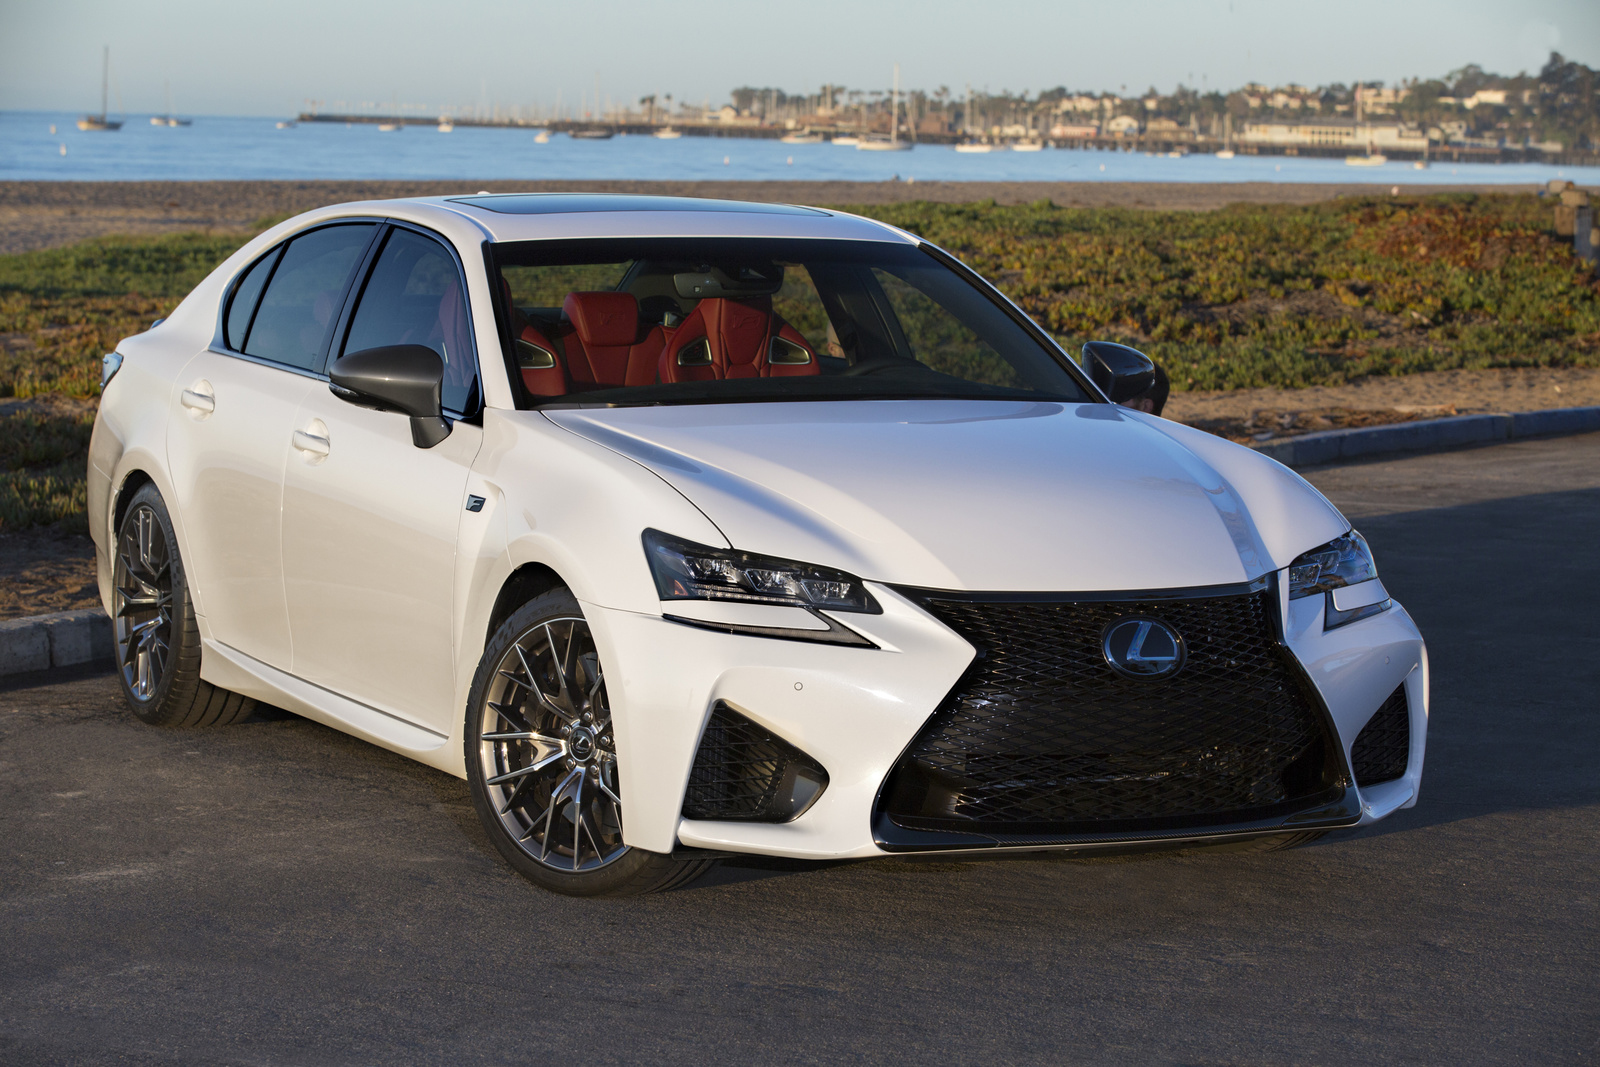 2018 Lexus GS F Owners Manual